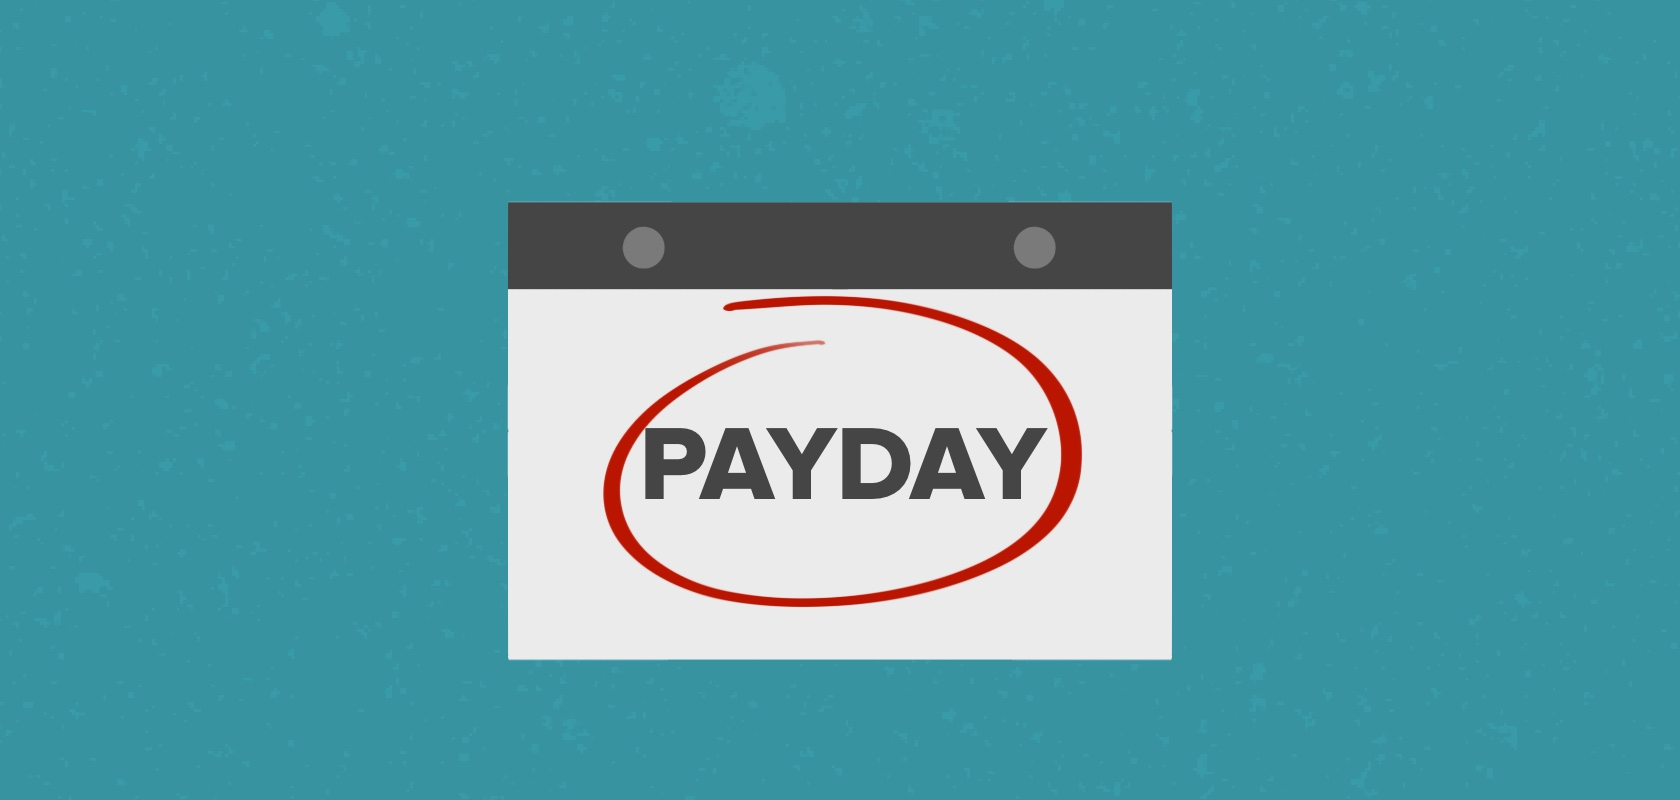 Wagepoint payroll frequency Payday banner